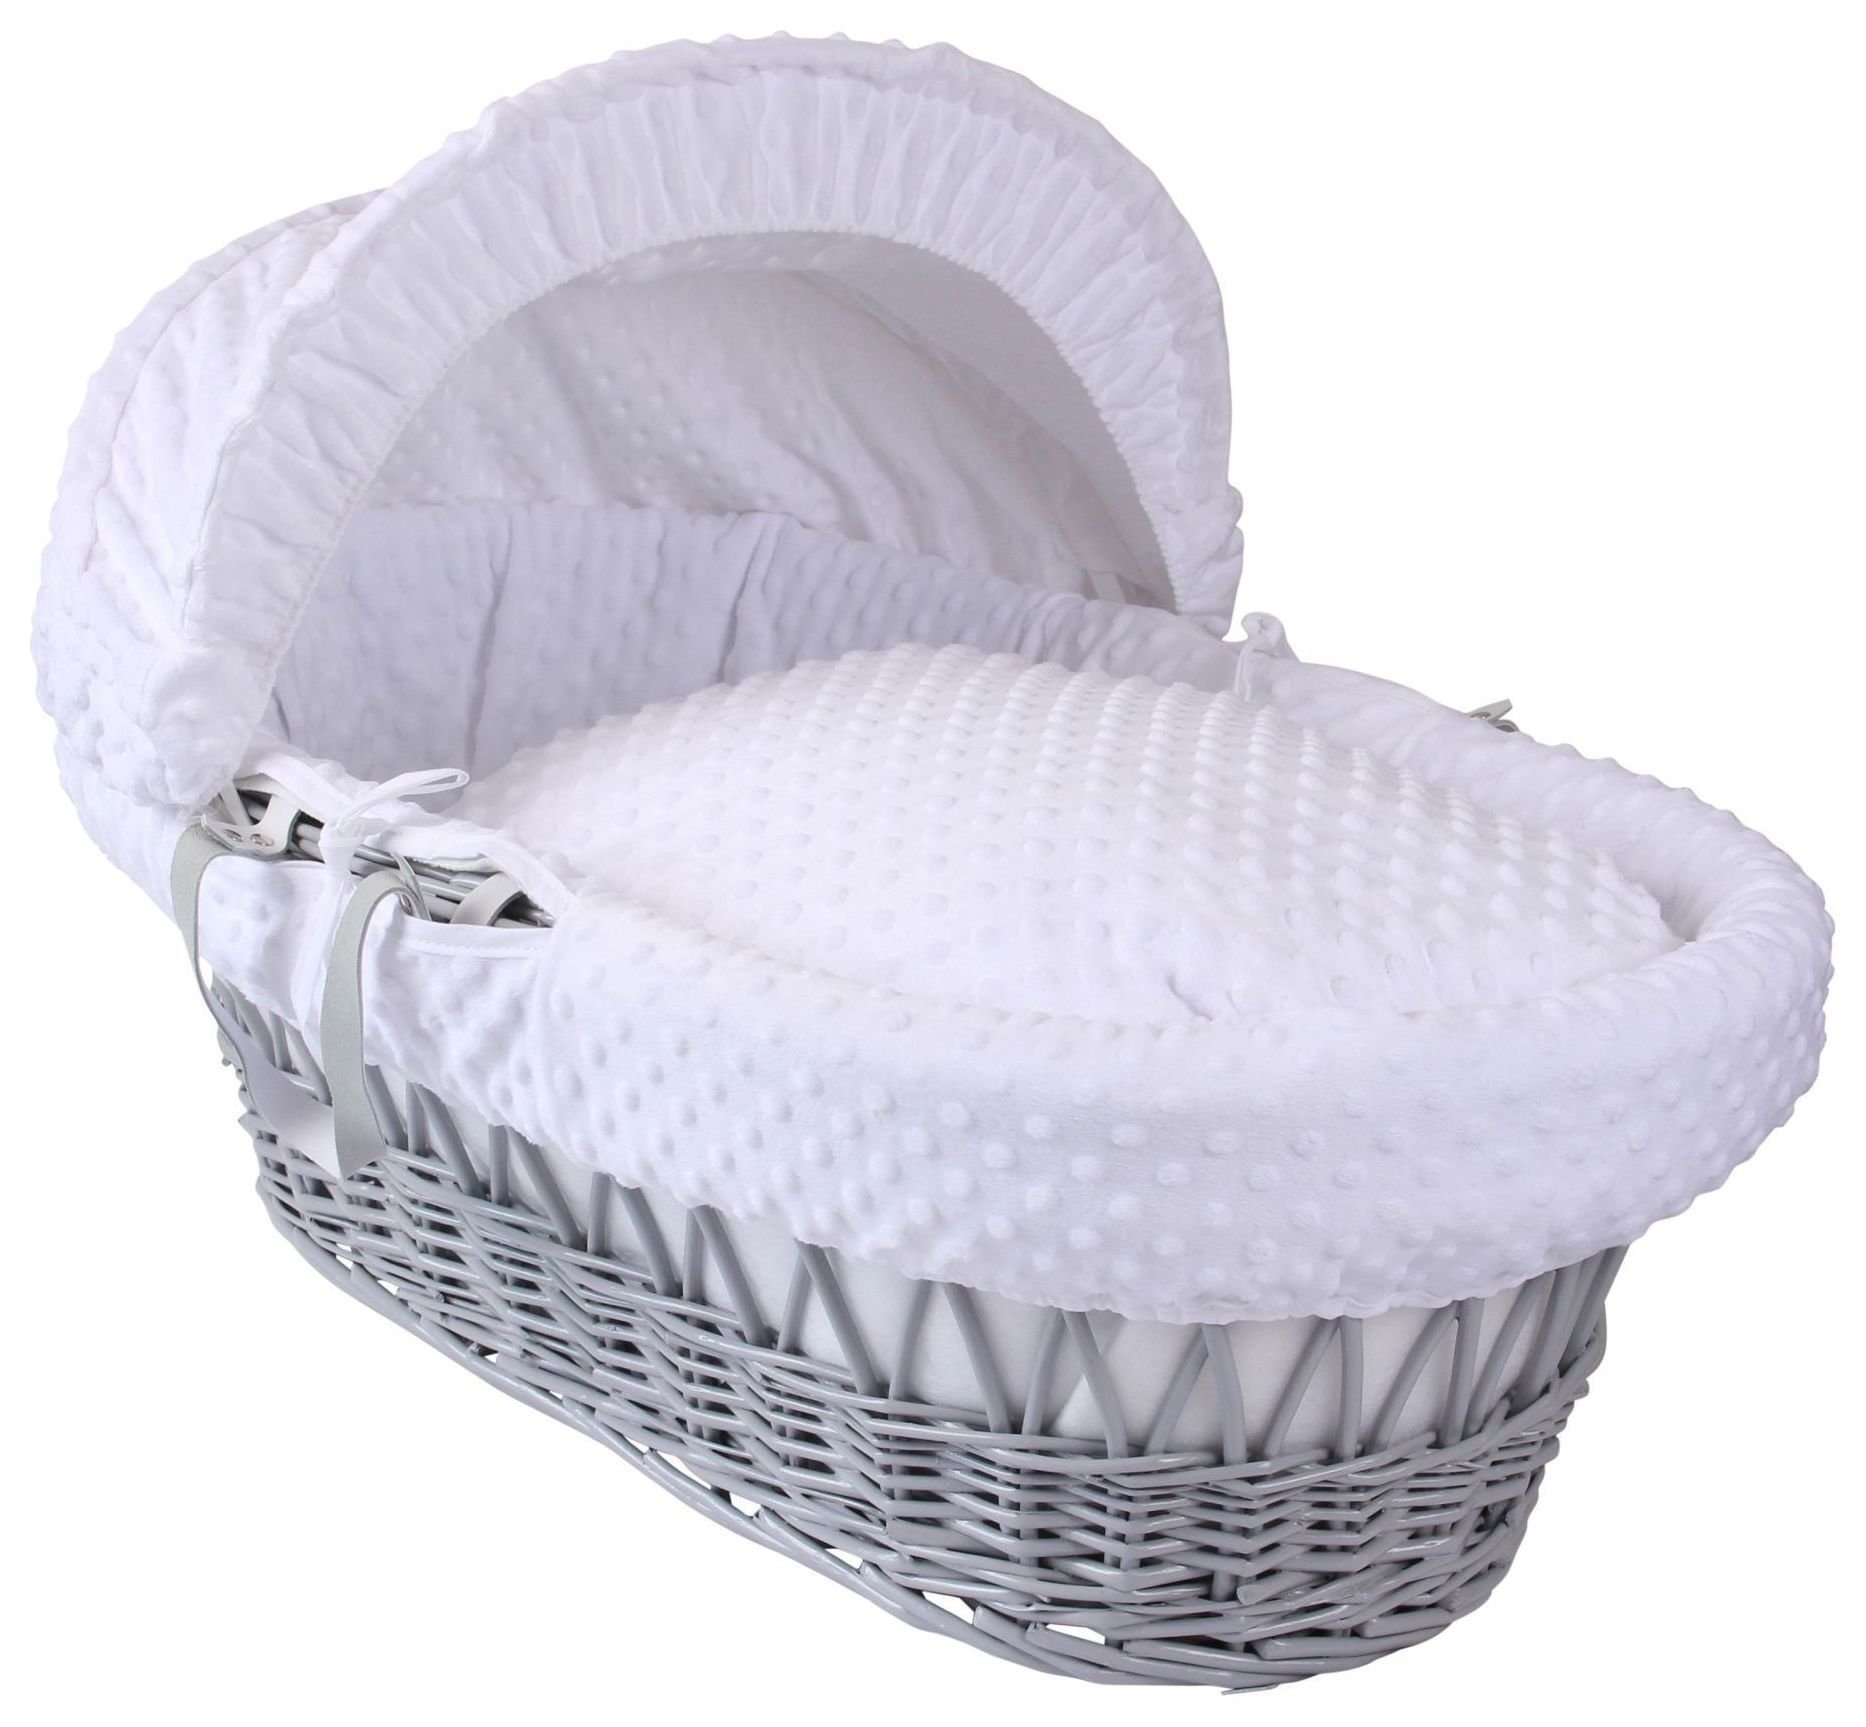 Clair de Lune Dimple Wicker Basket - White/Grey